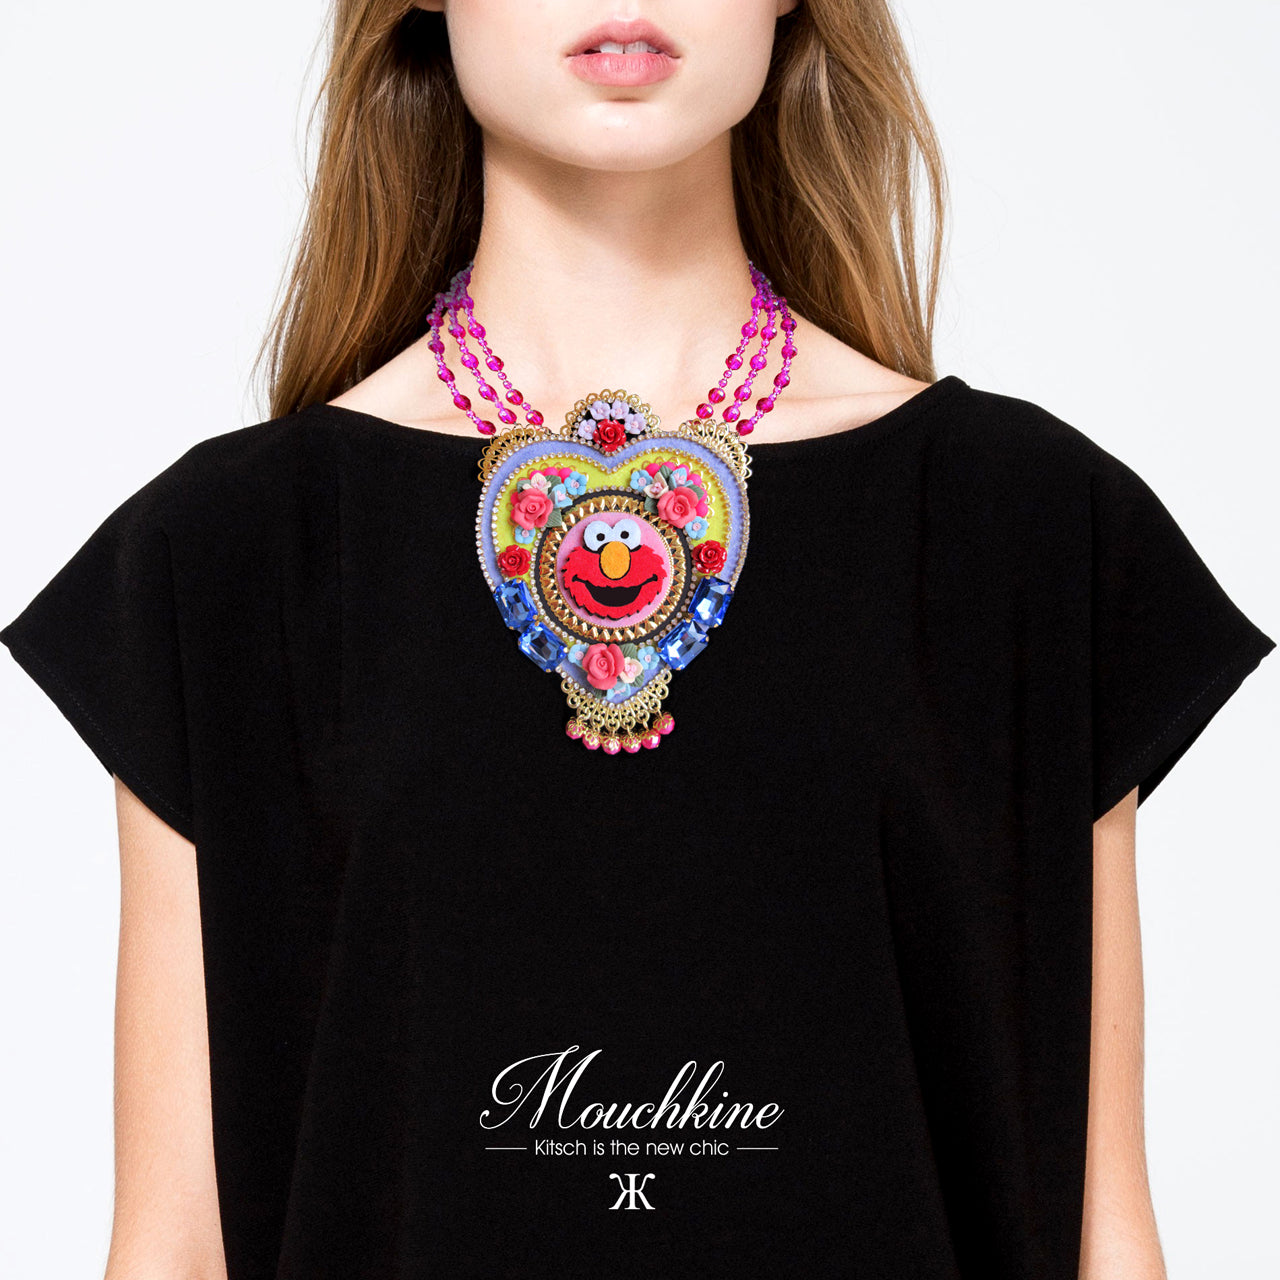 Mouchkine Jewelry Elmo Necklace, entirely handmade and made in France, a haute couture jewel with swarovsky crystals, pink glass pearls and ceramic flowers. Un collier Mouchkine mode et haute couture original, pour un look branché, sublime et chic.